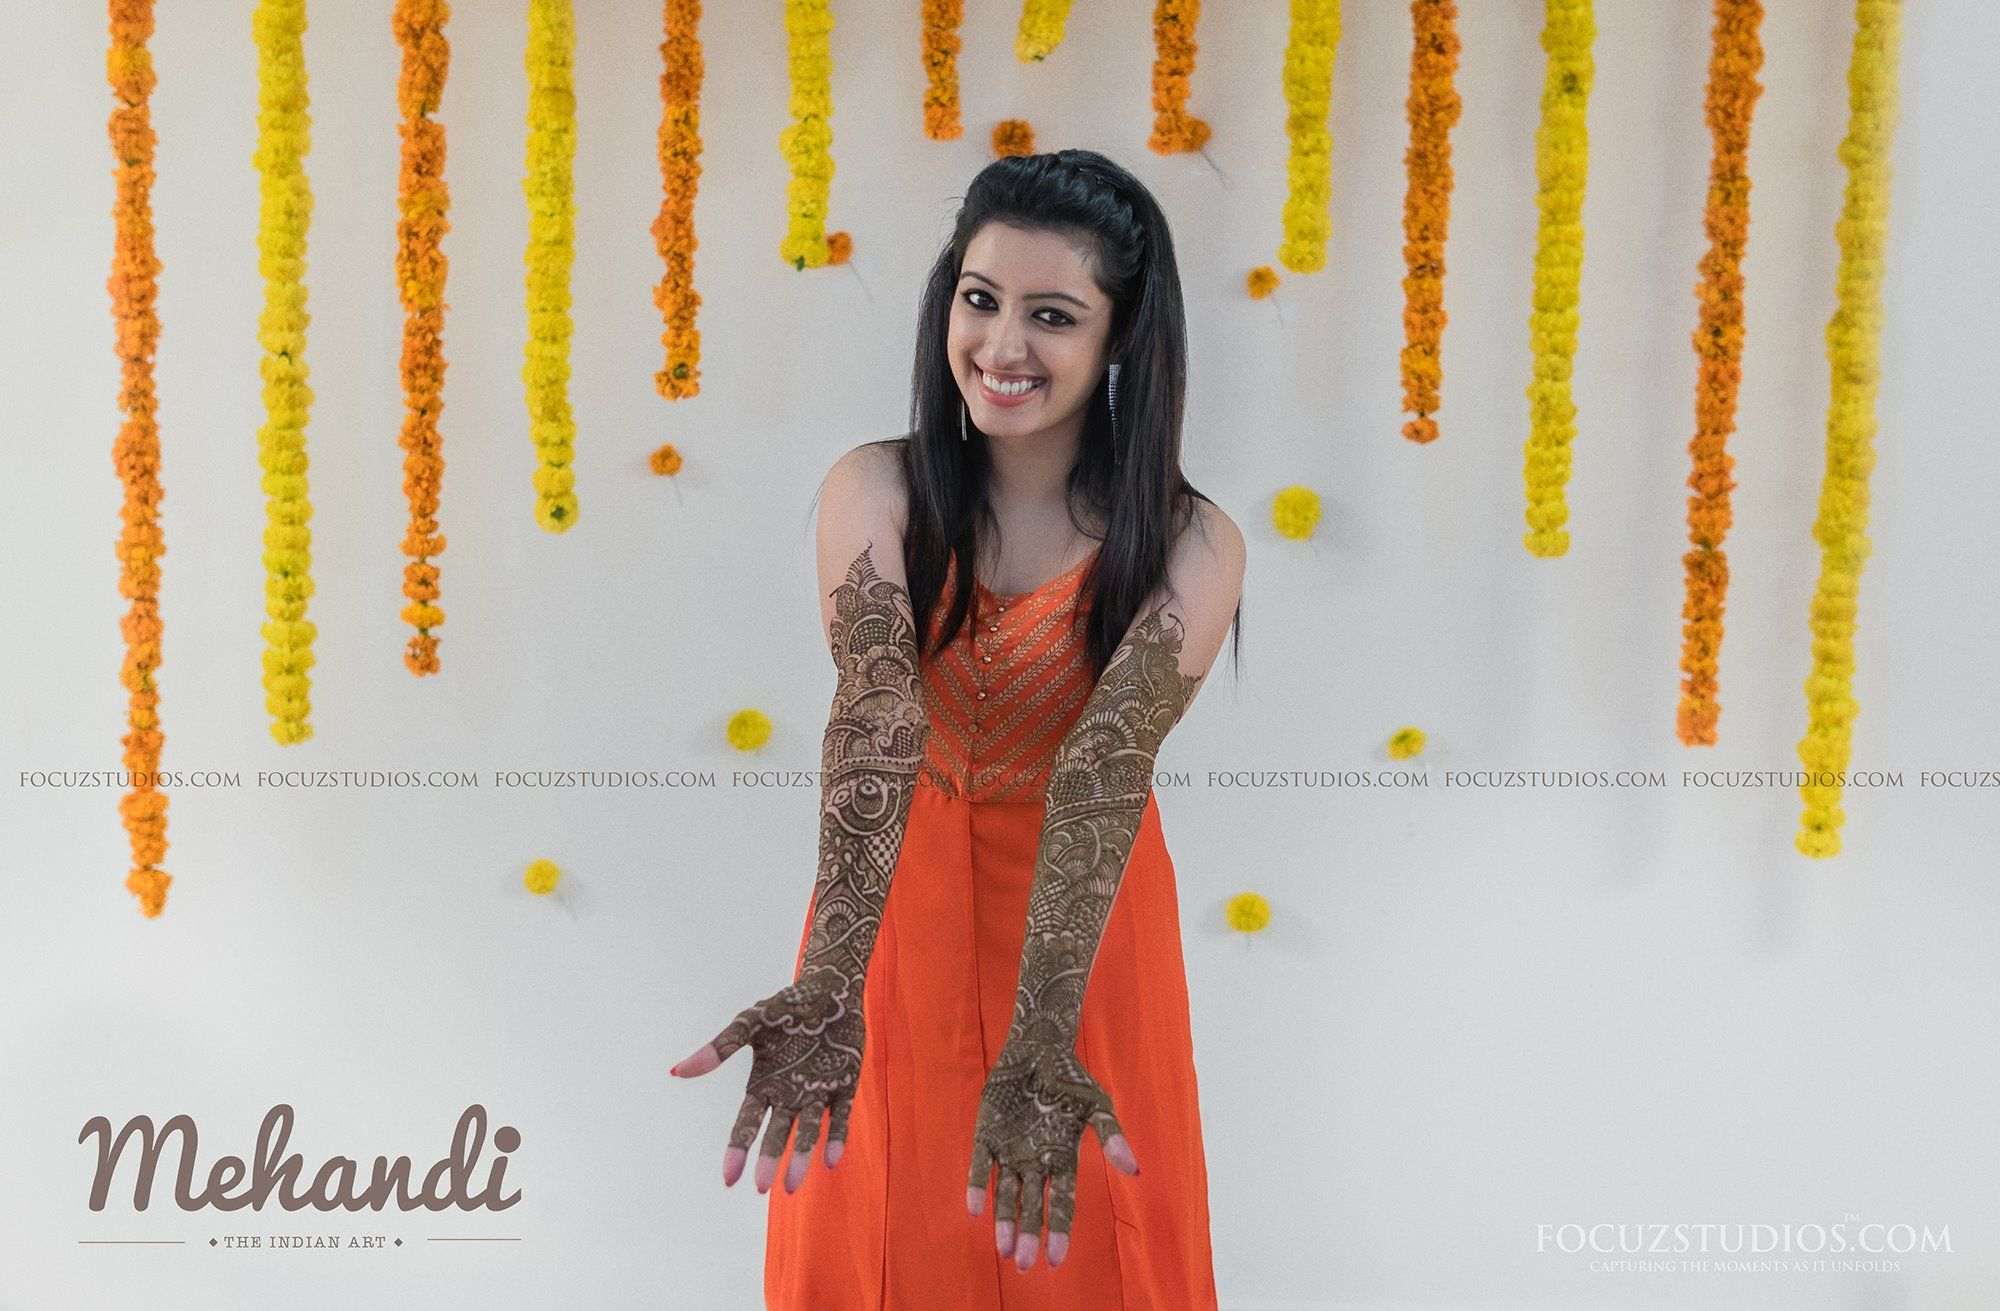 Bridal mehndi of nisha krishnan | Bridal Mehndi | Pinterest | Bridal ...